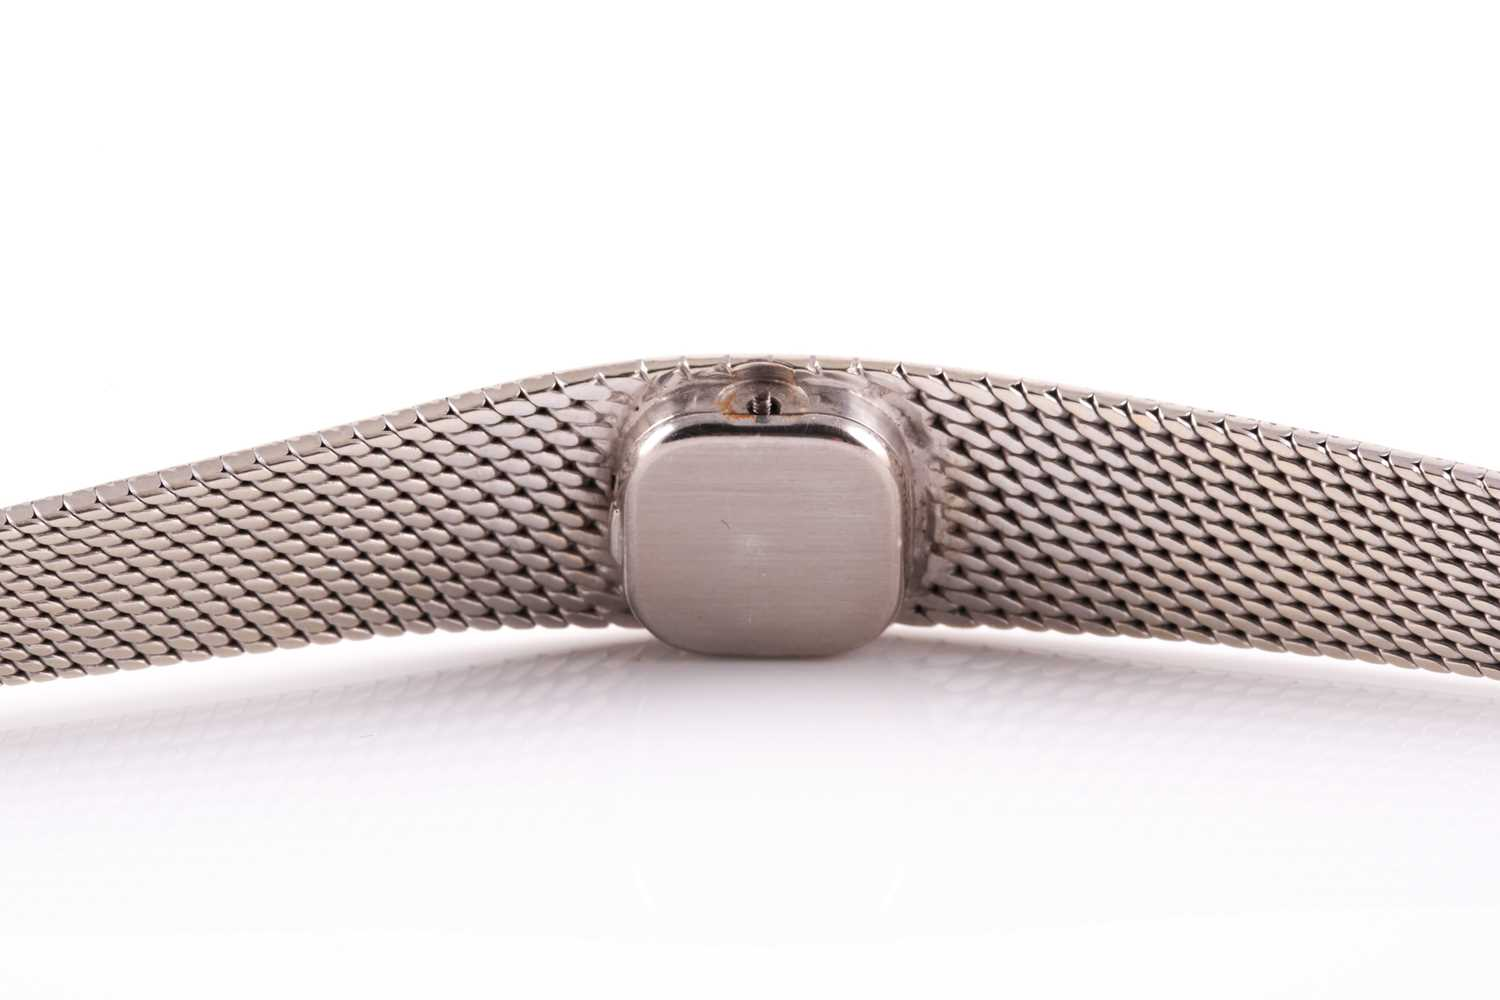 An 18ct white gold ladies Omega cocktail watch, the small baton dial inset into an articulated strap - Image 2 of 5